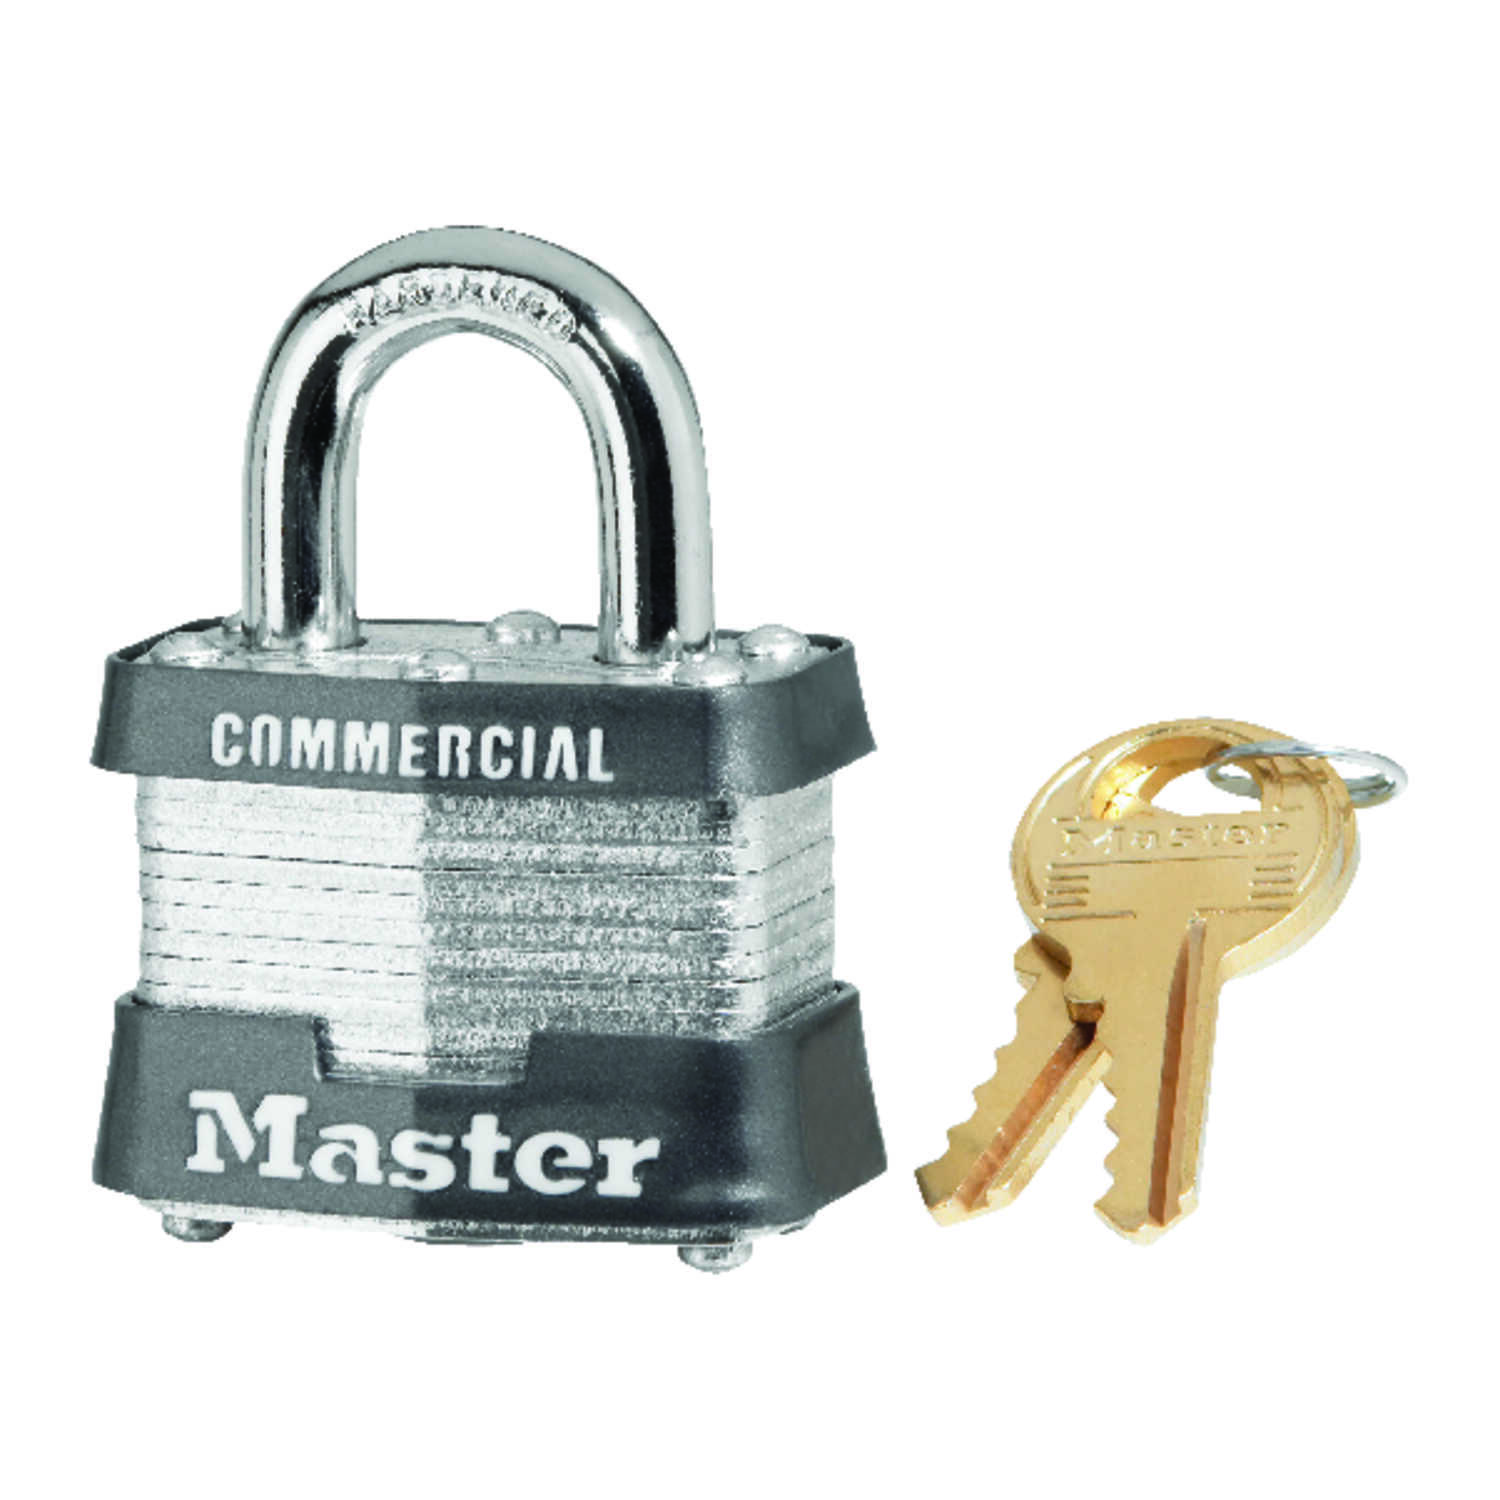 Master Lock  1-5/16 in. H x 1-5/8 in. W x 1-9/16 in. L Laminated Steel  4-Pin Cylinder  Padlock  Key